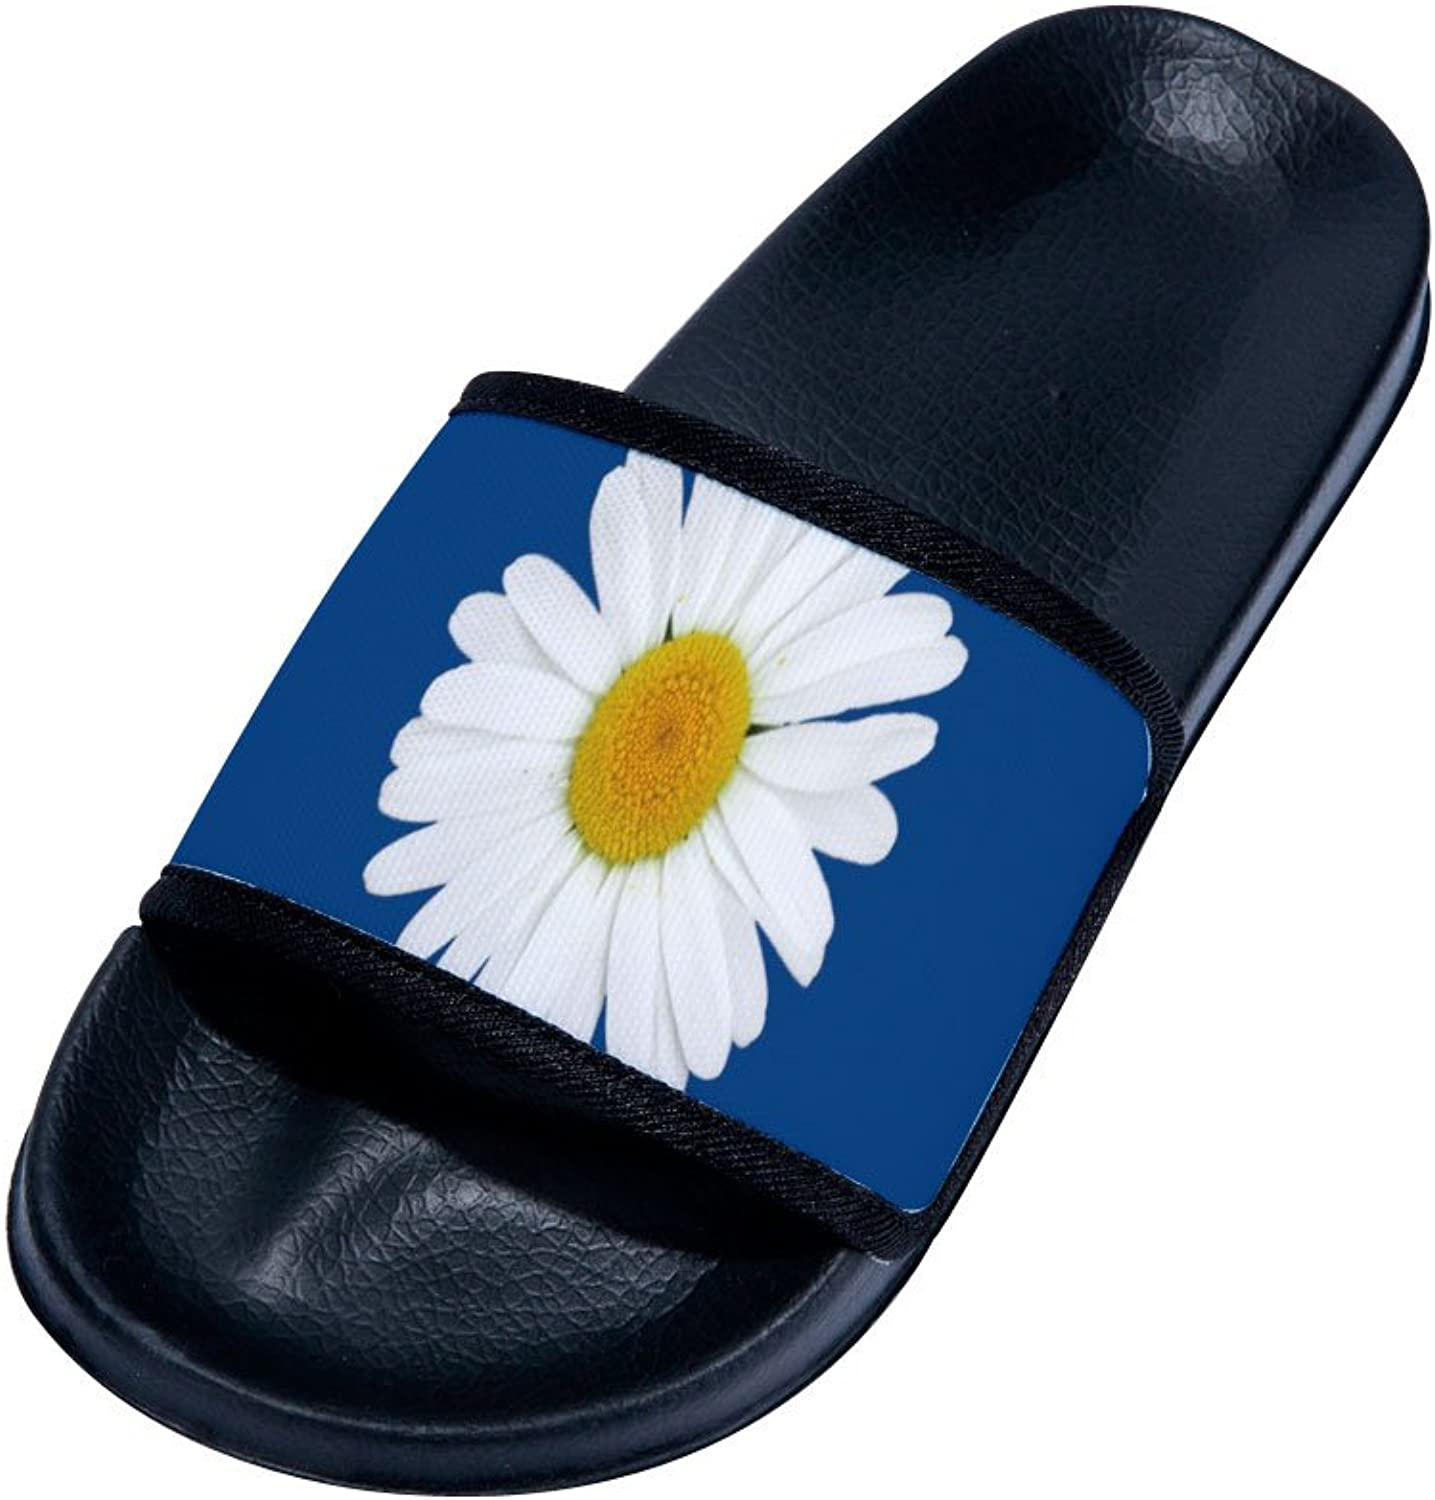 Buteri Daisy Summer Breathable Quick-Drying Non-Slip Slippers